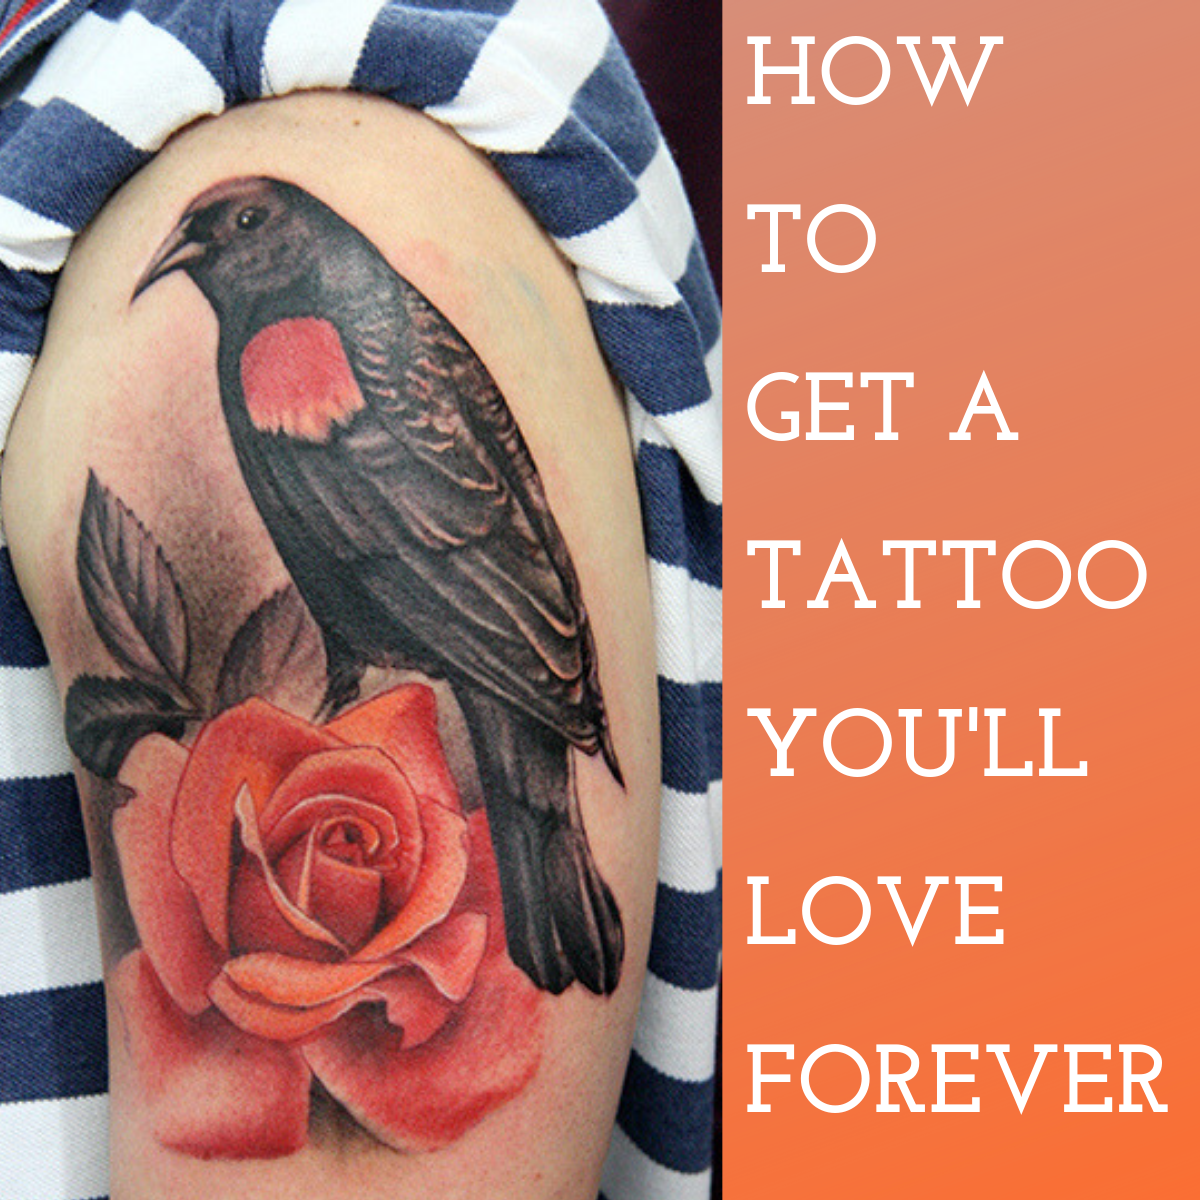 81ad66c4bdab5 A Tattoo Artist's Tips for Getting a Tattoo You'll Love Forever ...